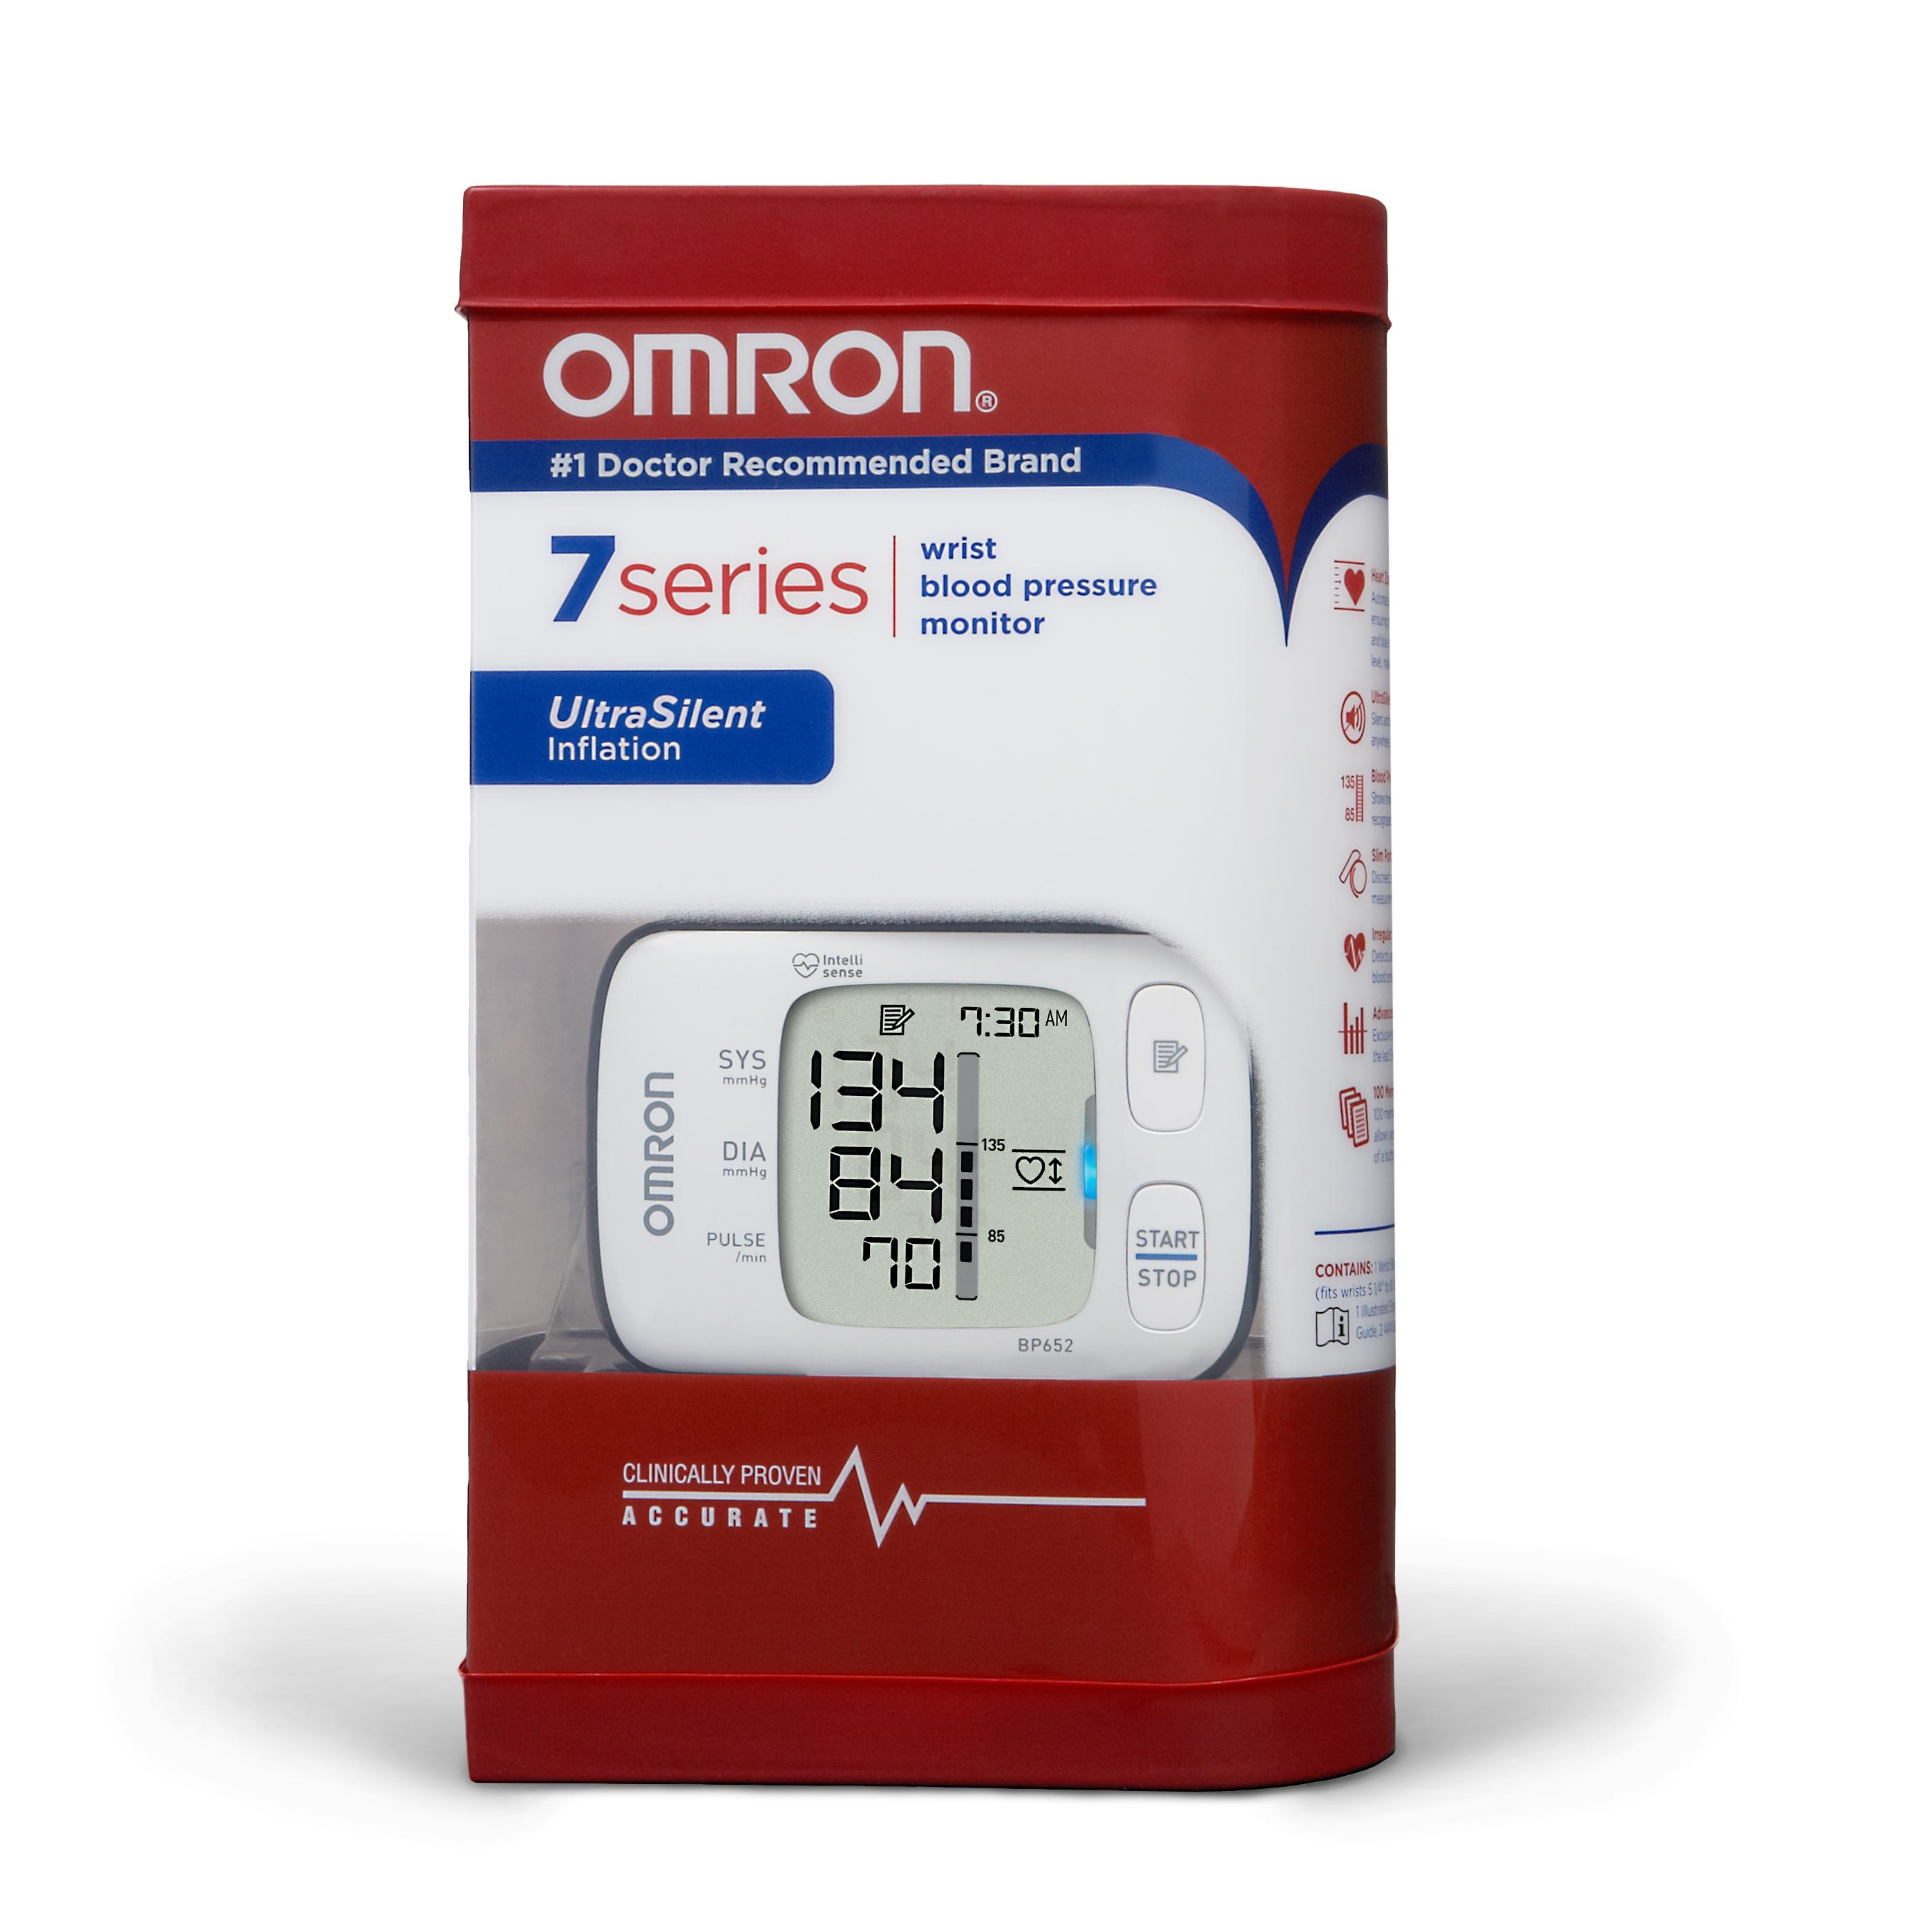 Uniboxing And Review Of The Life Brand Blood Pressure Manual Guide